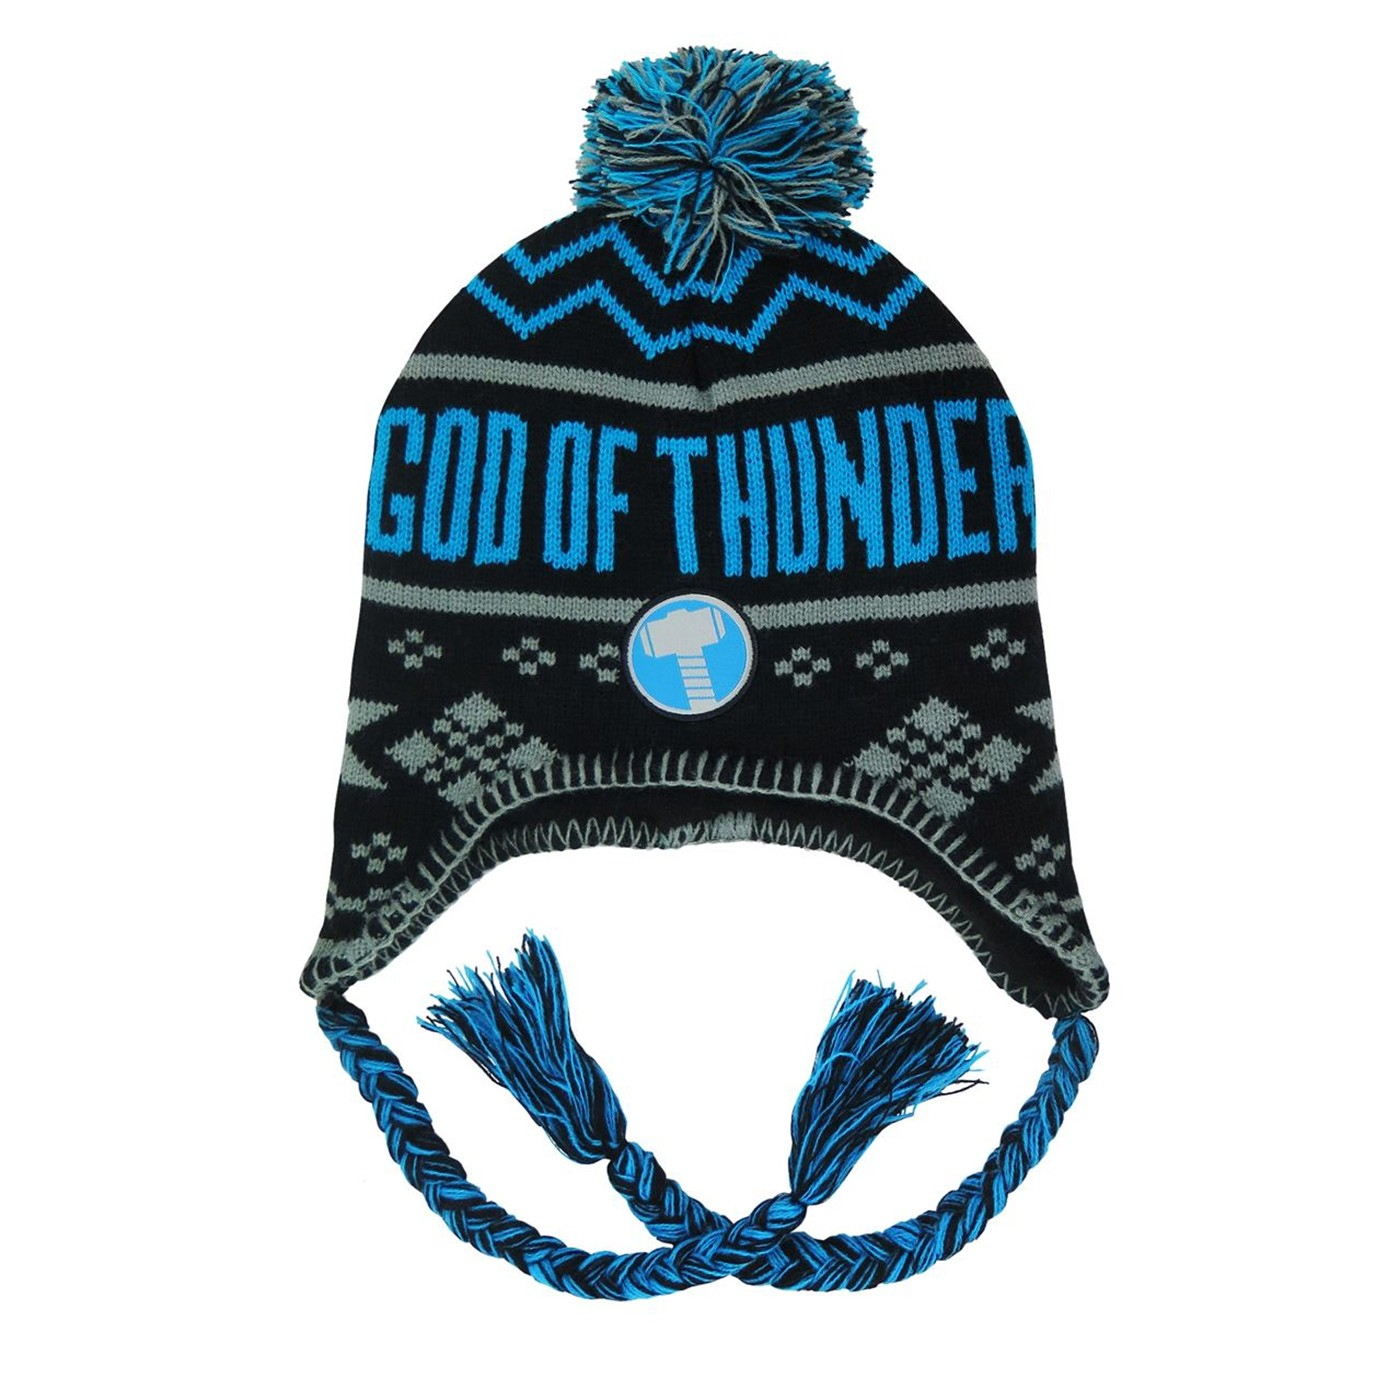 Thor God of Thunder Laplander Beanie